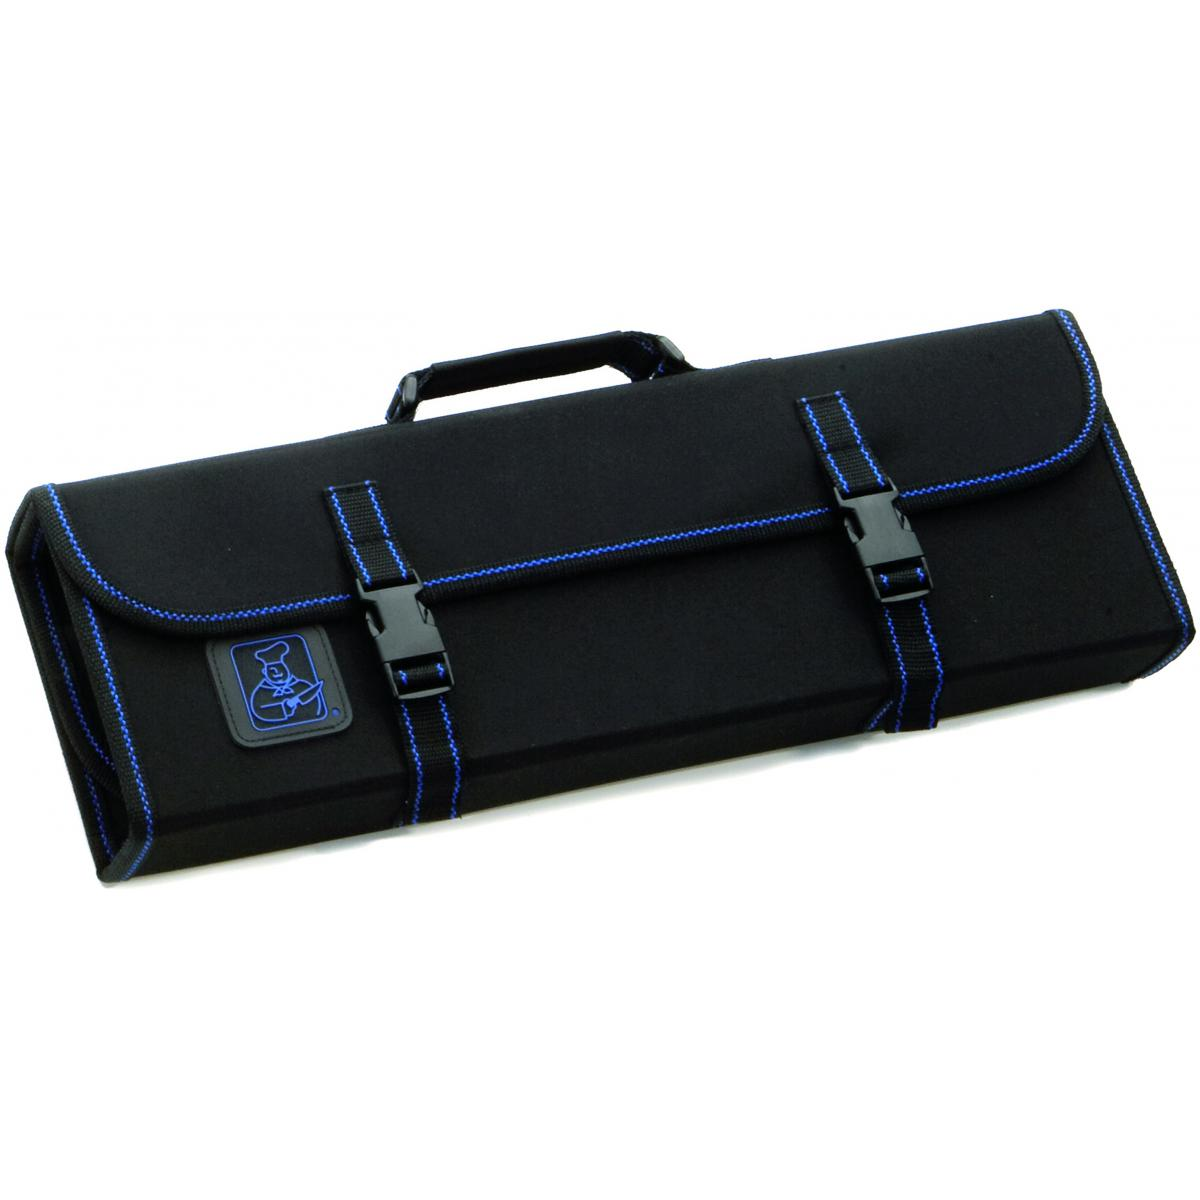 hard core knife case with handle noble express. Black Bedroom Furniture Sets. Home Design Ideas